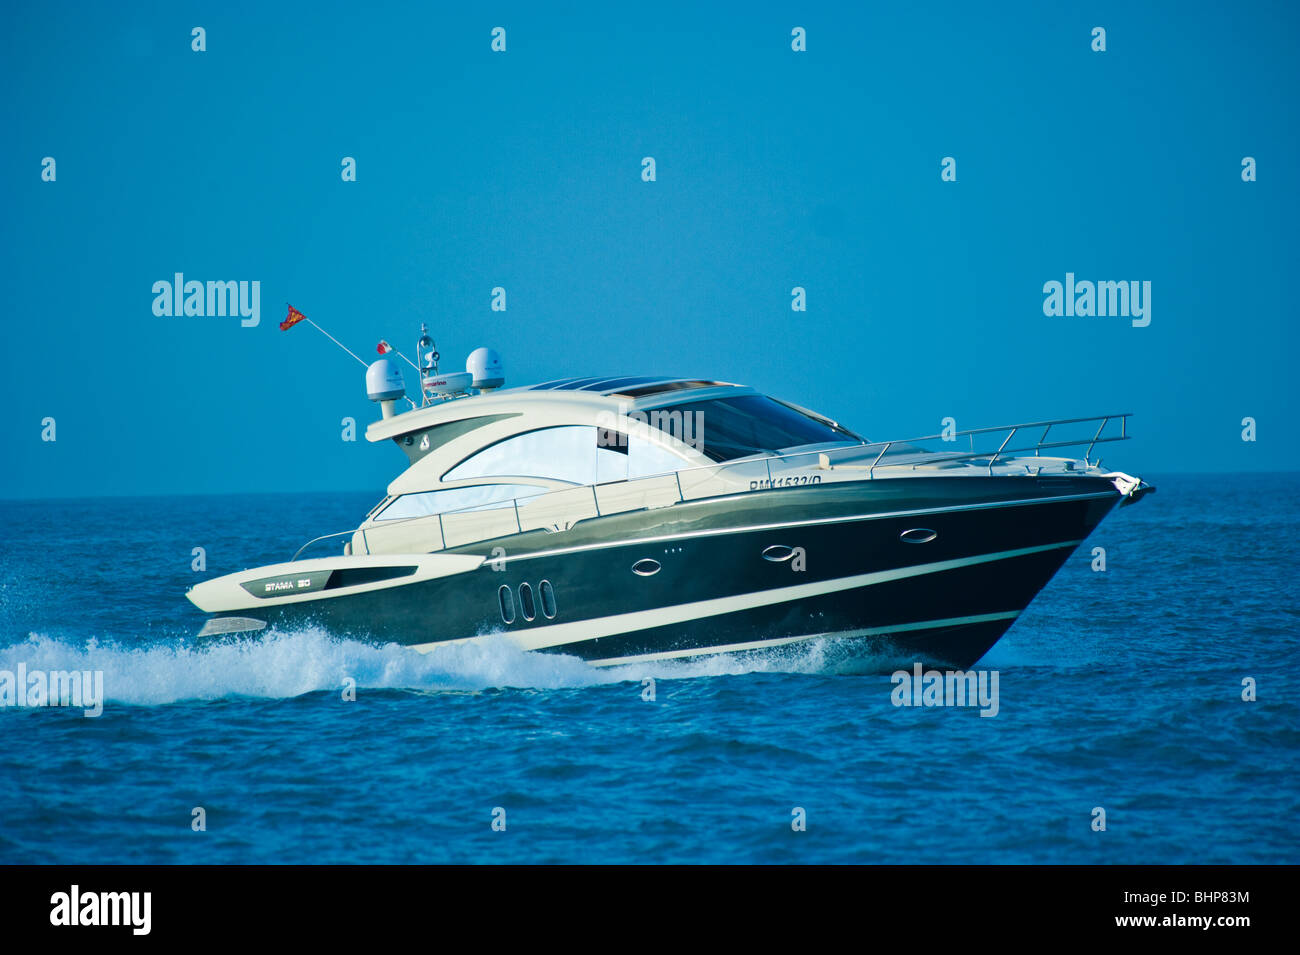 Stama 50 Power boat, yacht at Mediterranean Sea, Trapani, Sicilia, Italy Stock Photo